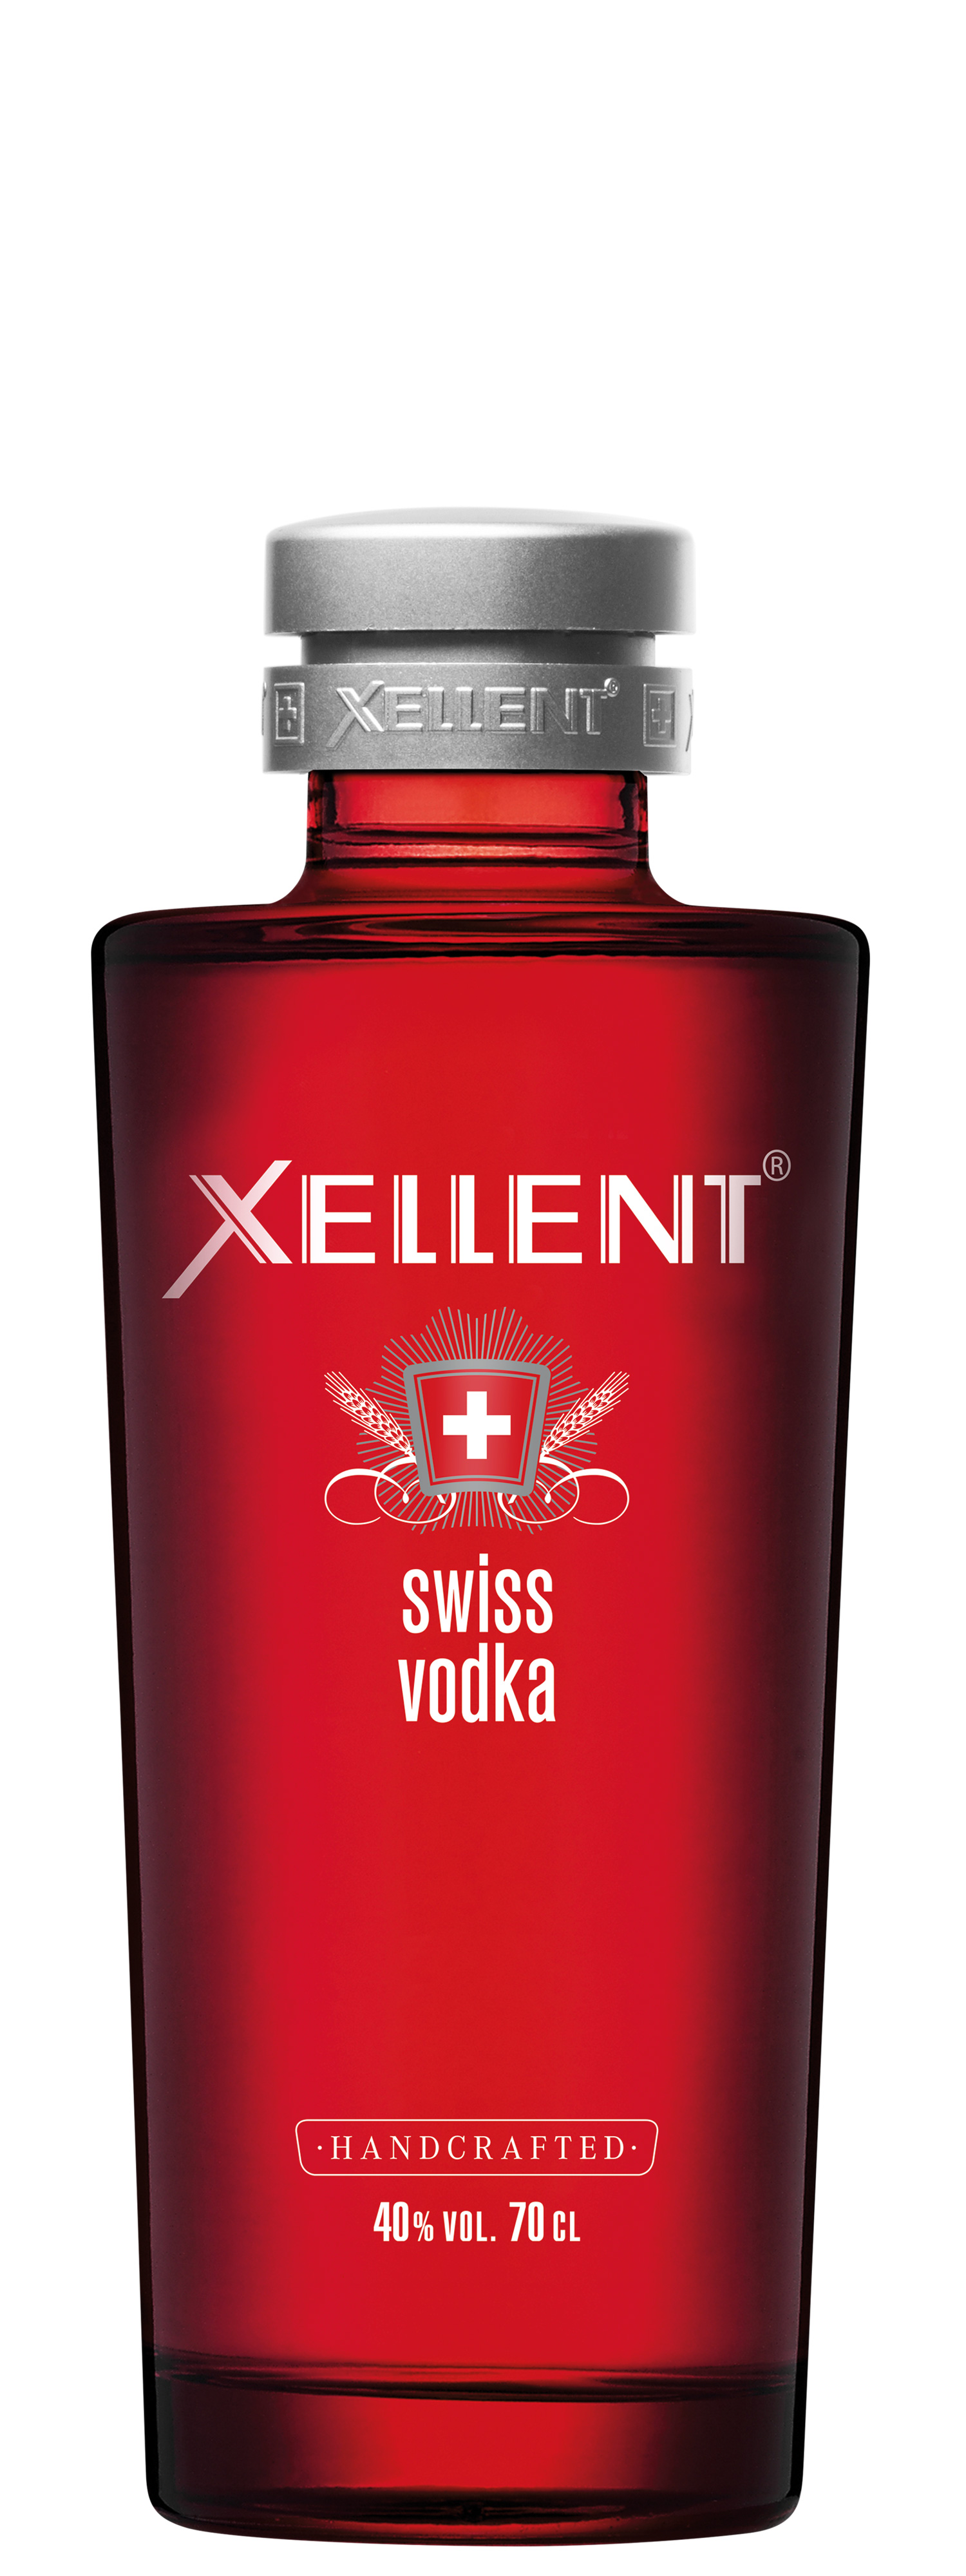 Xellent Vodka 70cl